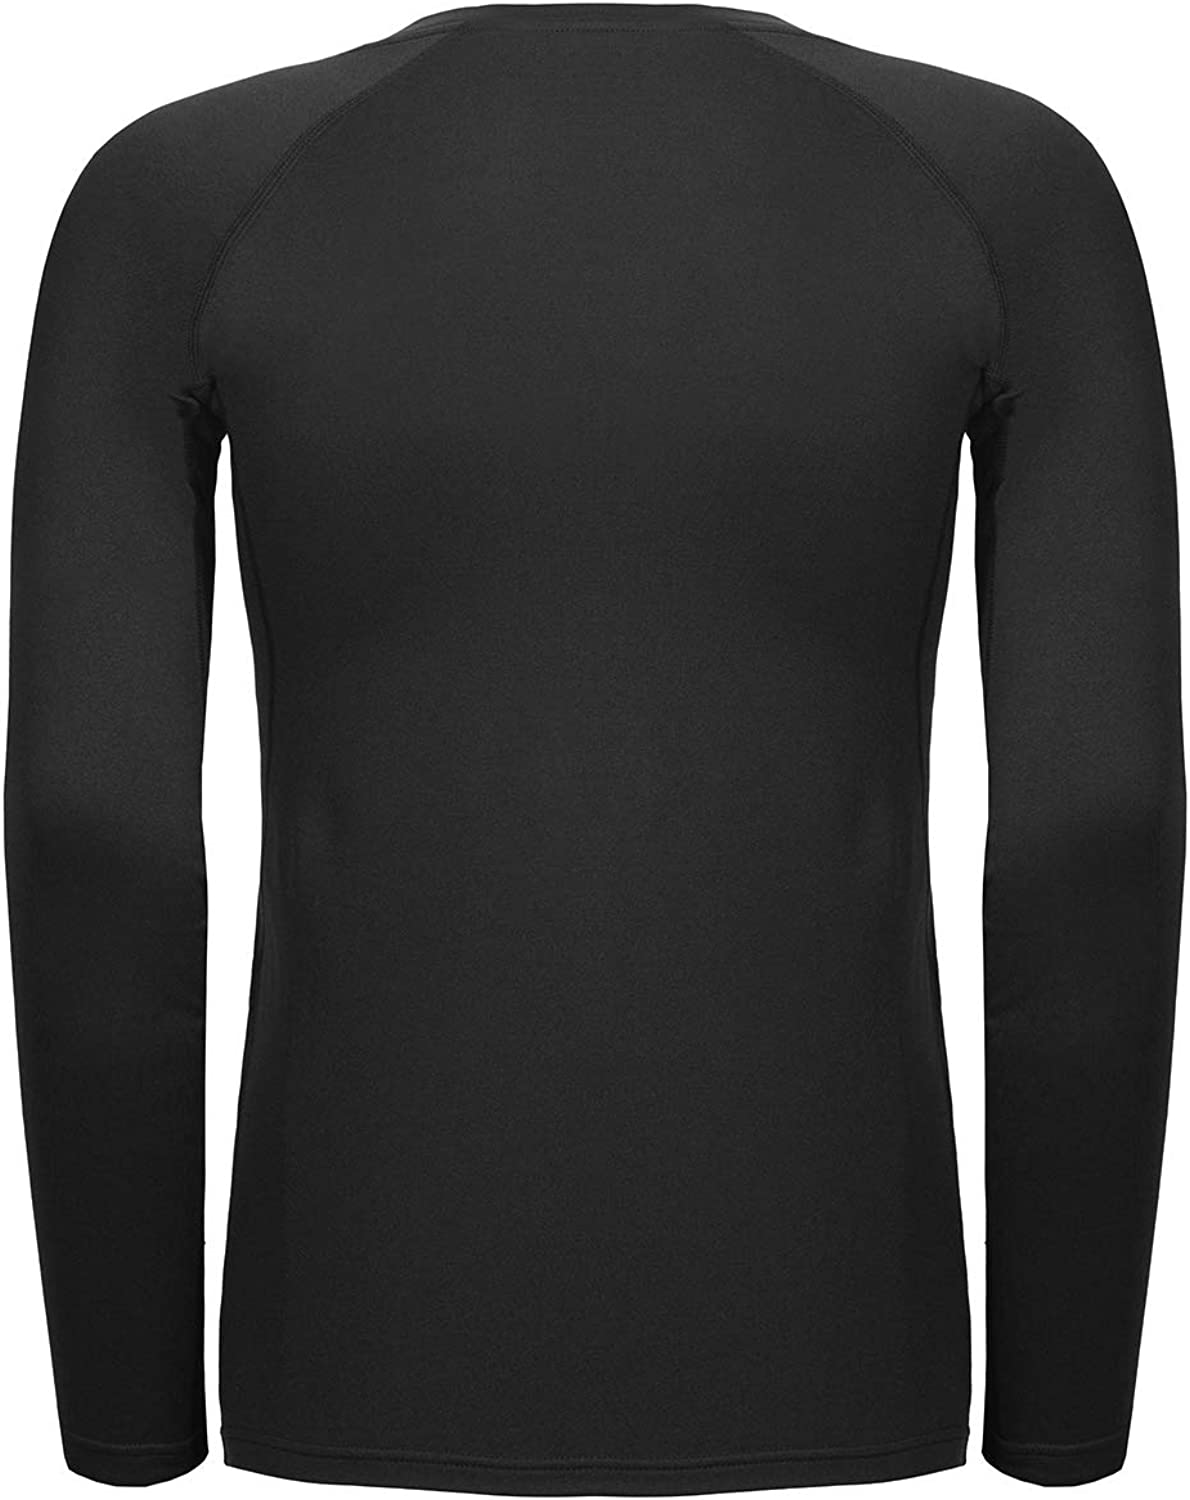 TAIBID Youth Boys' Compression Thermal Shirt Fleece Base Layer Long Sleeve Soccer Baseball Top, Size S - XL: Clothing, Shoes & Jewelry